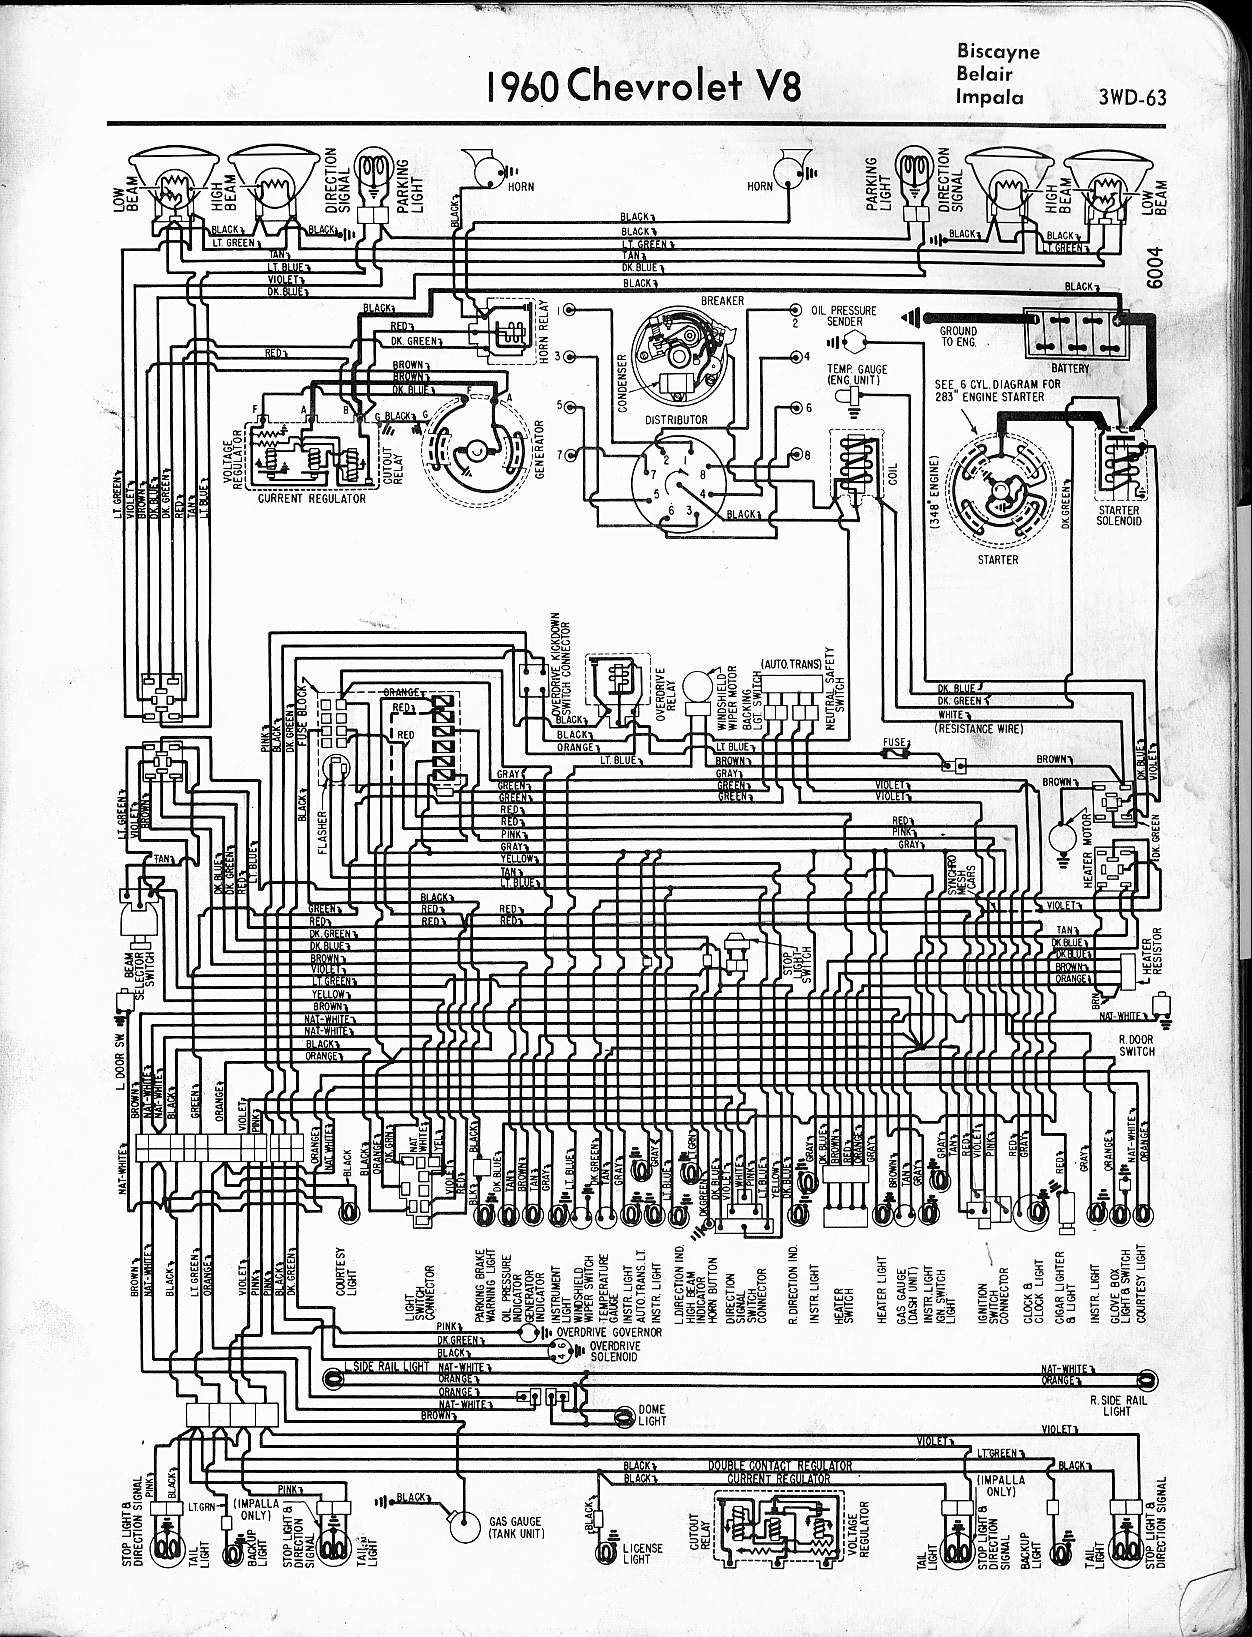 chevy starter wiring diagram Download-1960 V8 Biscayne Belair Impala 16-l